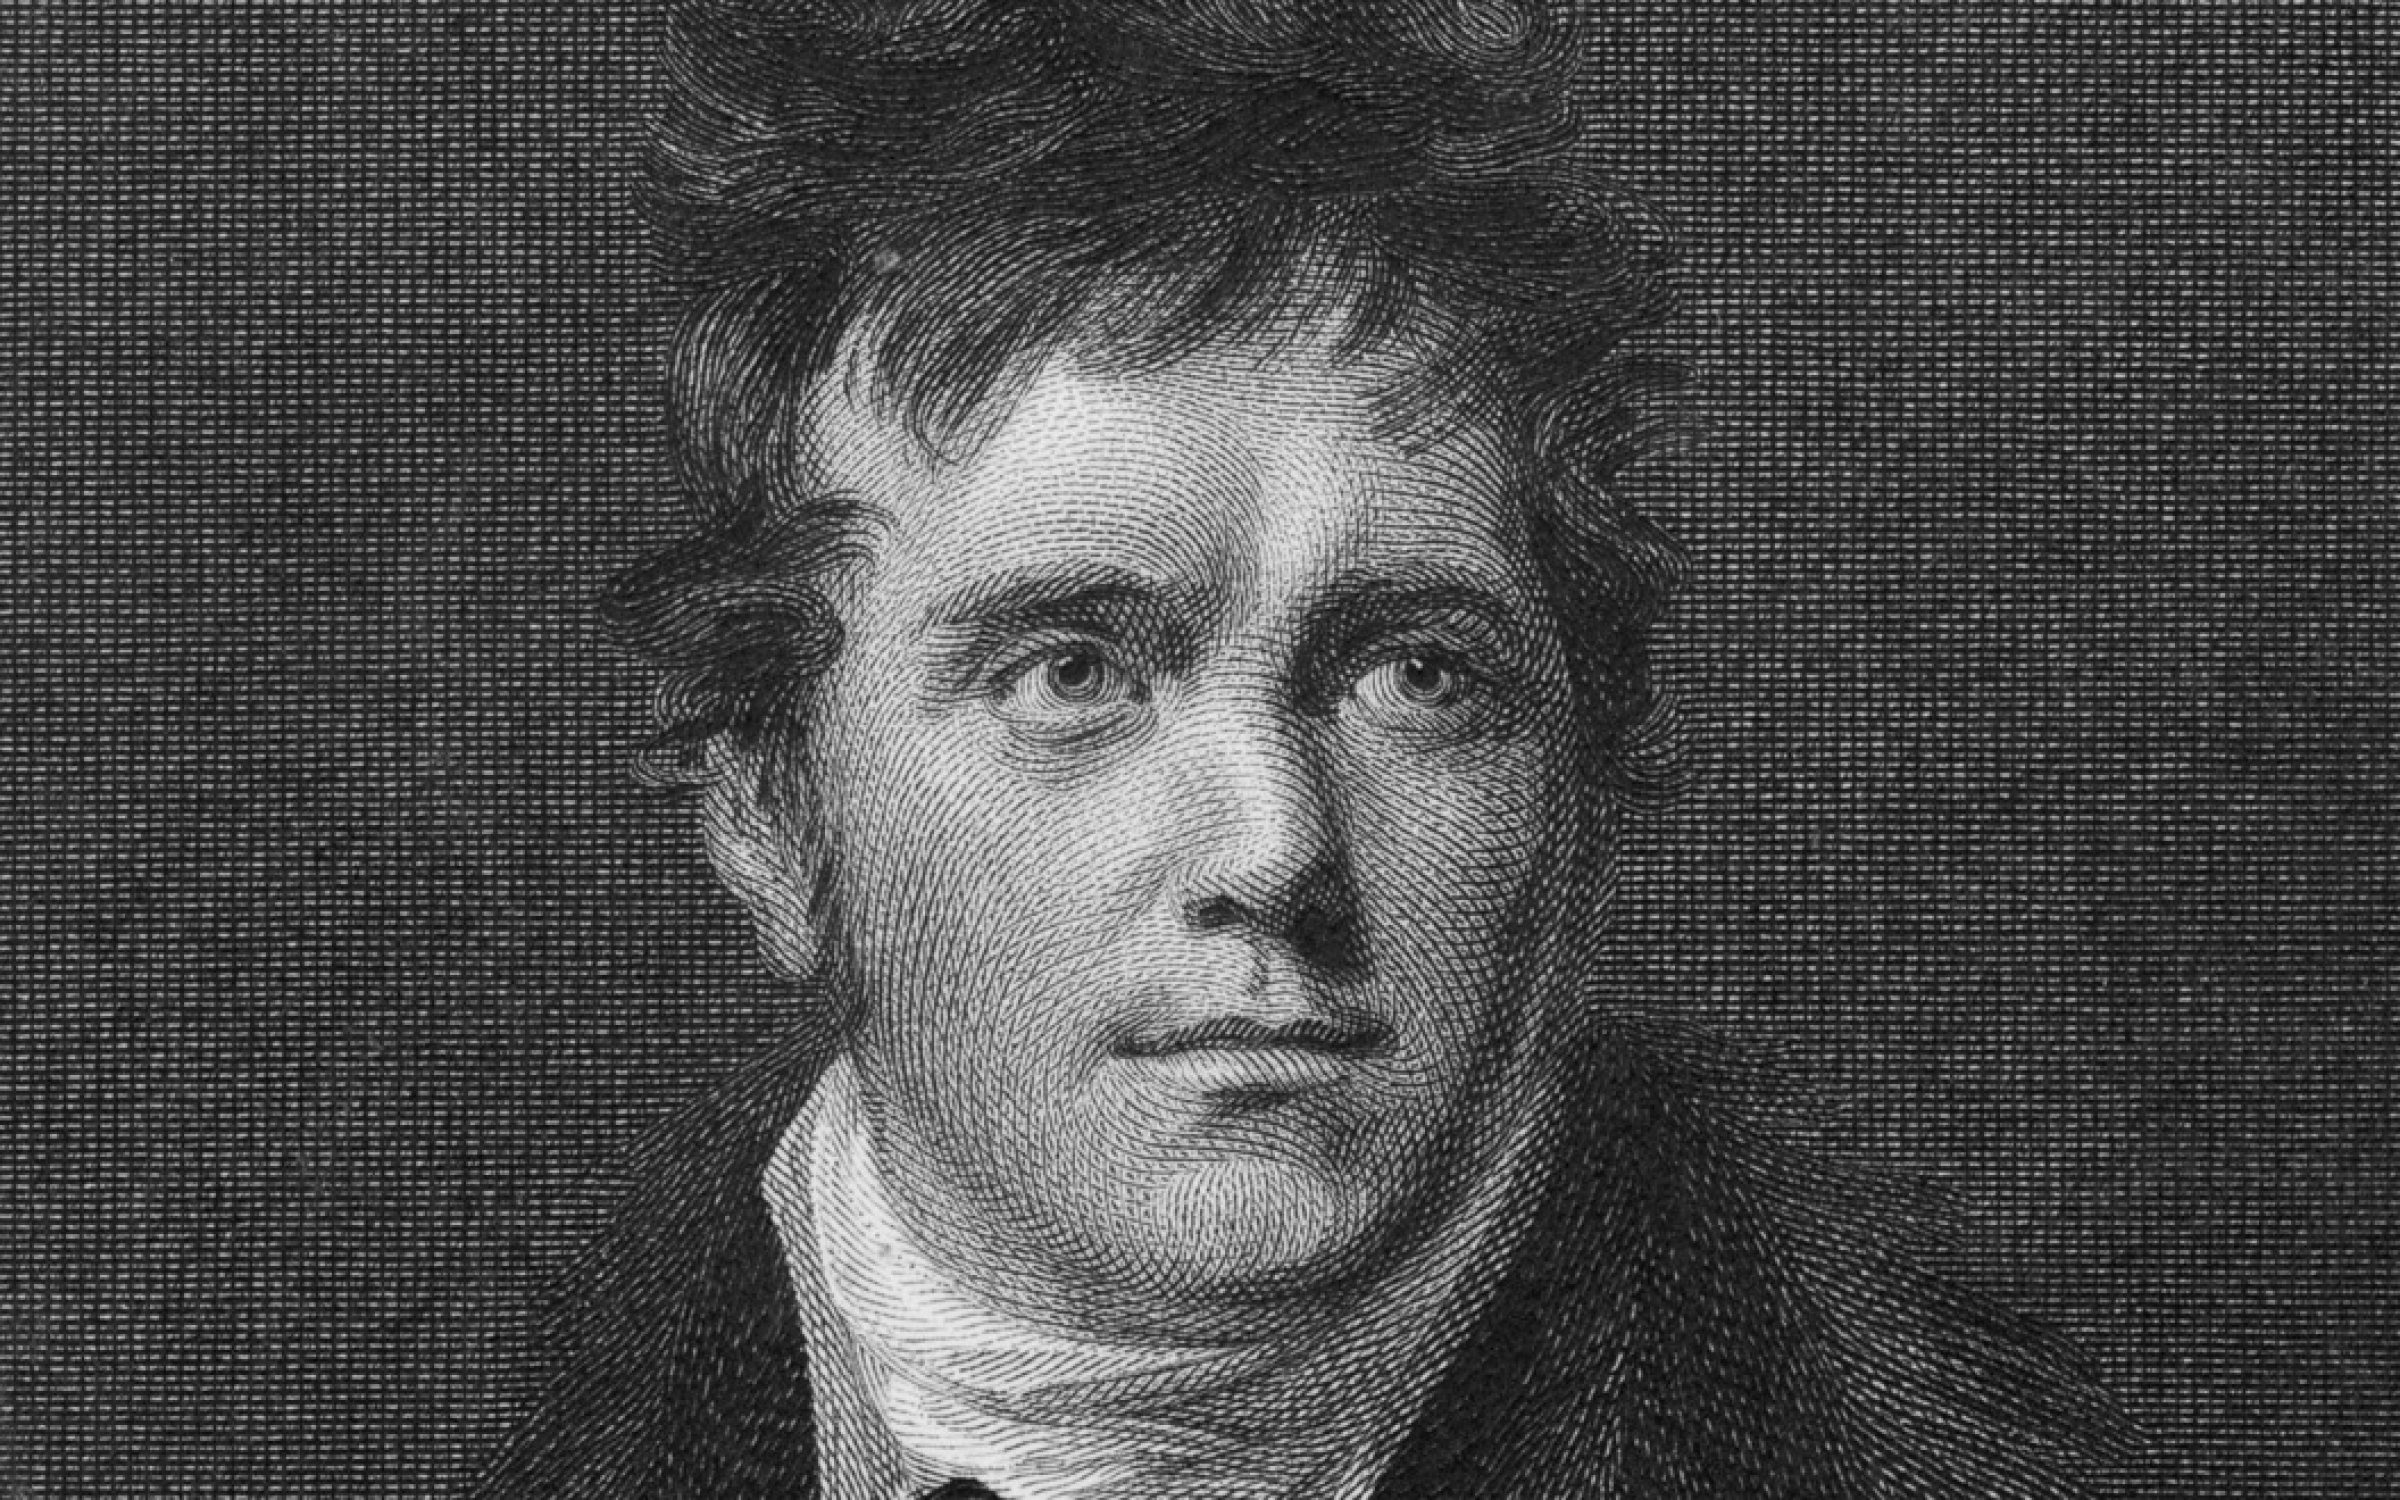 English traveller and mineralogist Edward Daniel Clarke, LLD (1769 - 1822), circa 1800. Engraved by Golding after a painting by John Opie. Credit: Hulton Archive/Getty Images